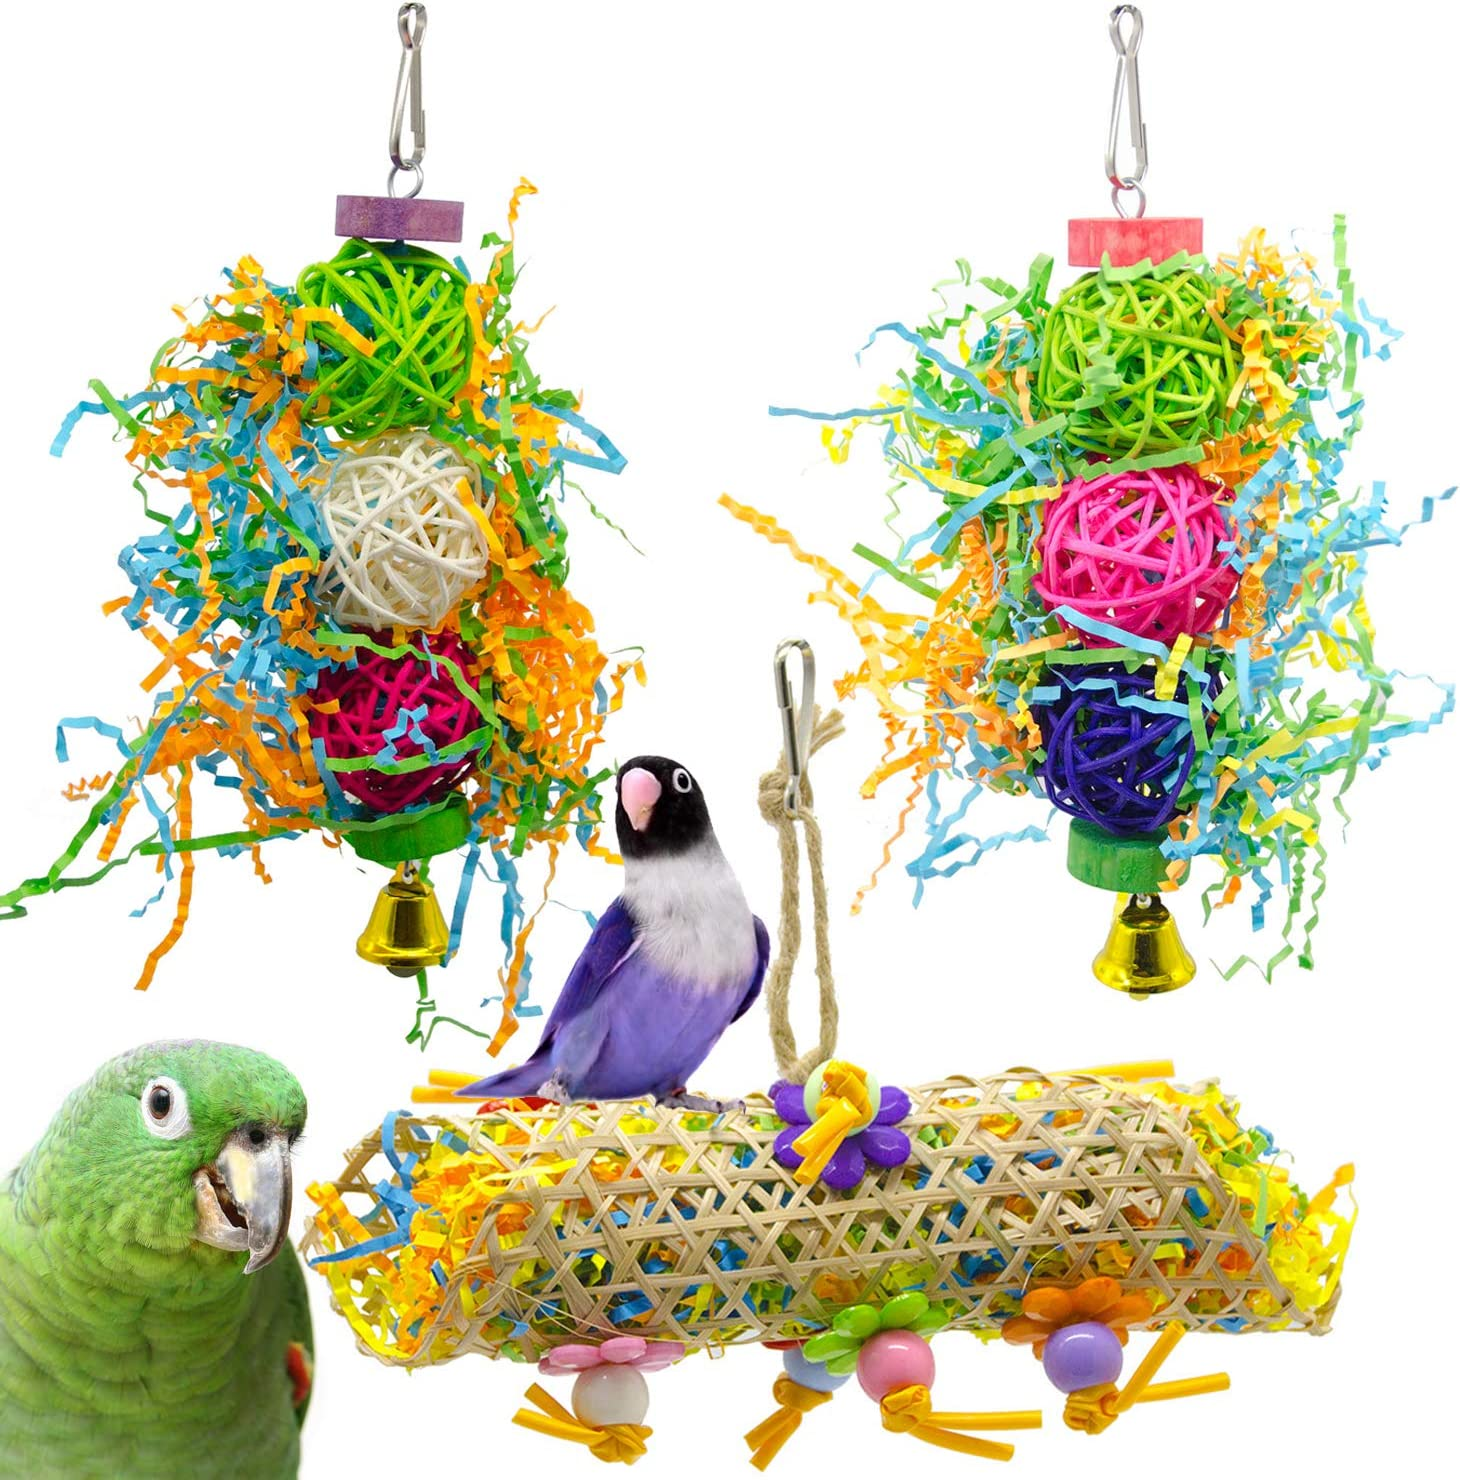 SHANTU 3Pack Bird Chewing Toys Foraging Shredder Toy Parrot Cage Shredder Toy Bird Loofah Toys Foraging Hanging Toy for Cockatiel Conure African Grey Parrot